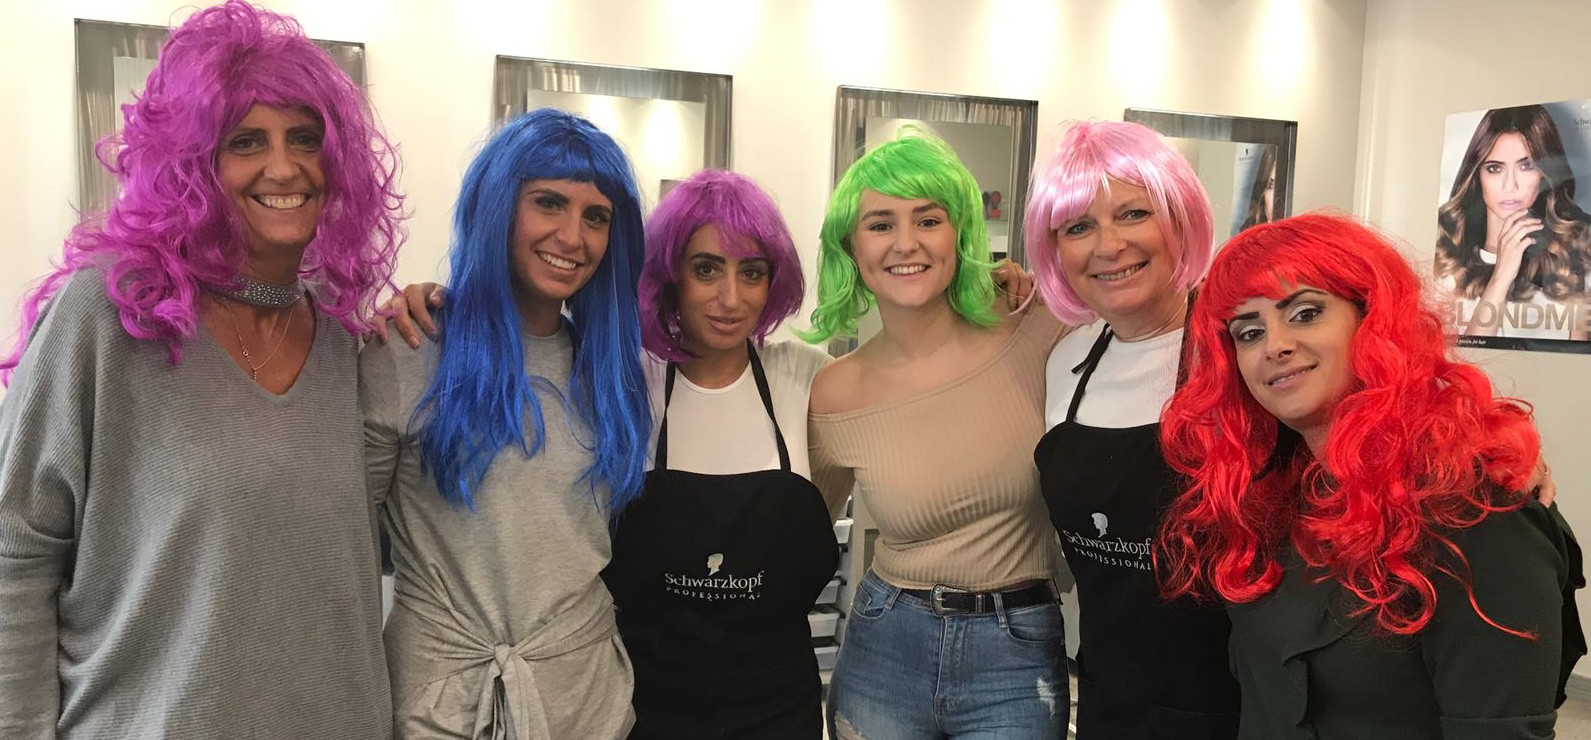 Hair salon charity day in Enfield